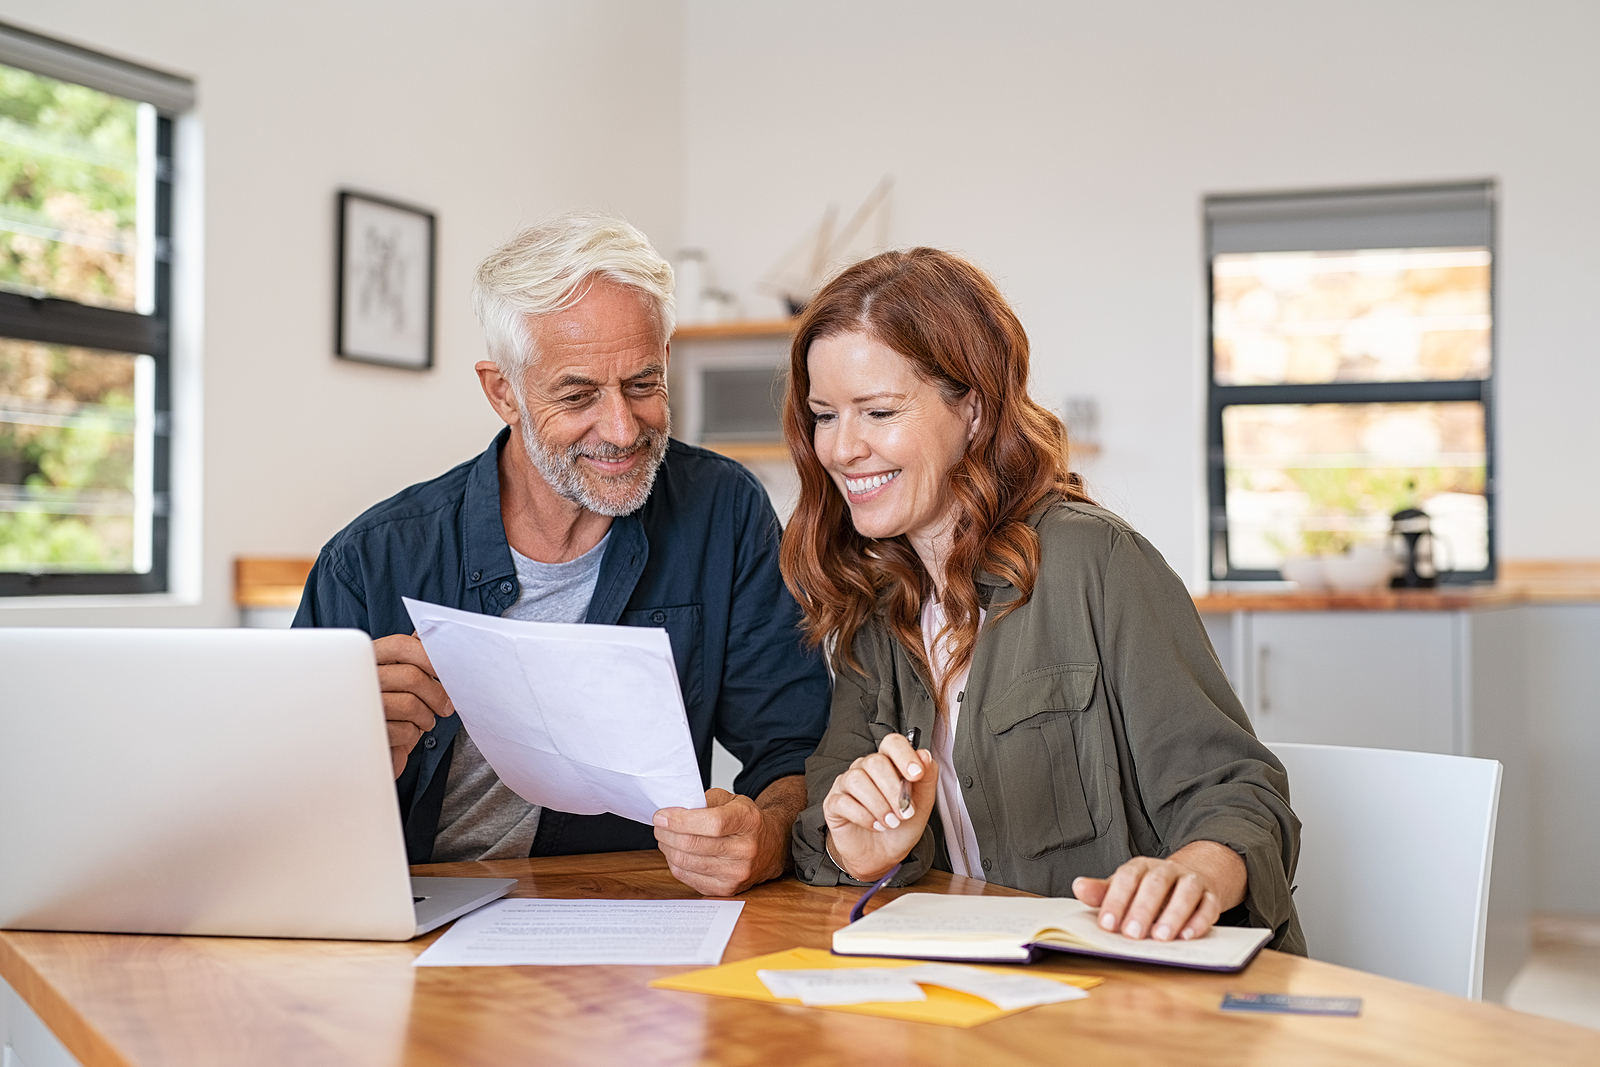 5 Ways to Double Your Money Before You Retire